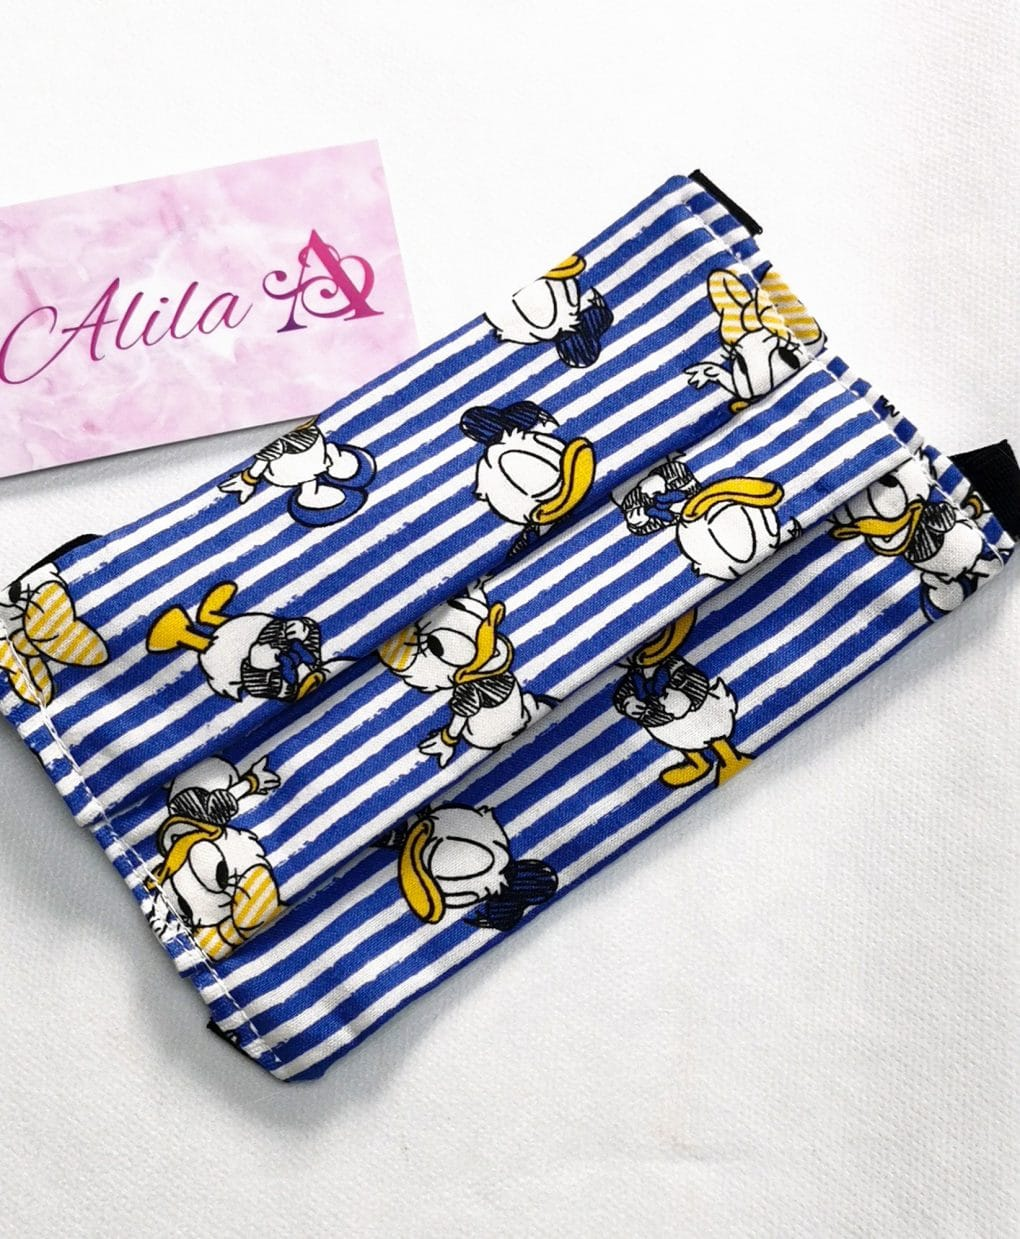 DONALD-DUCK-Disney-Face-Covering-Alila